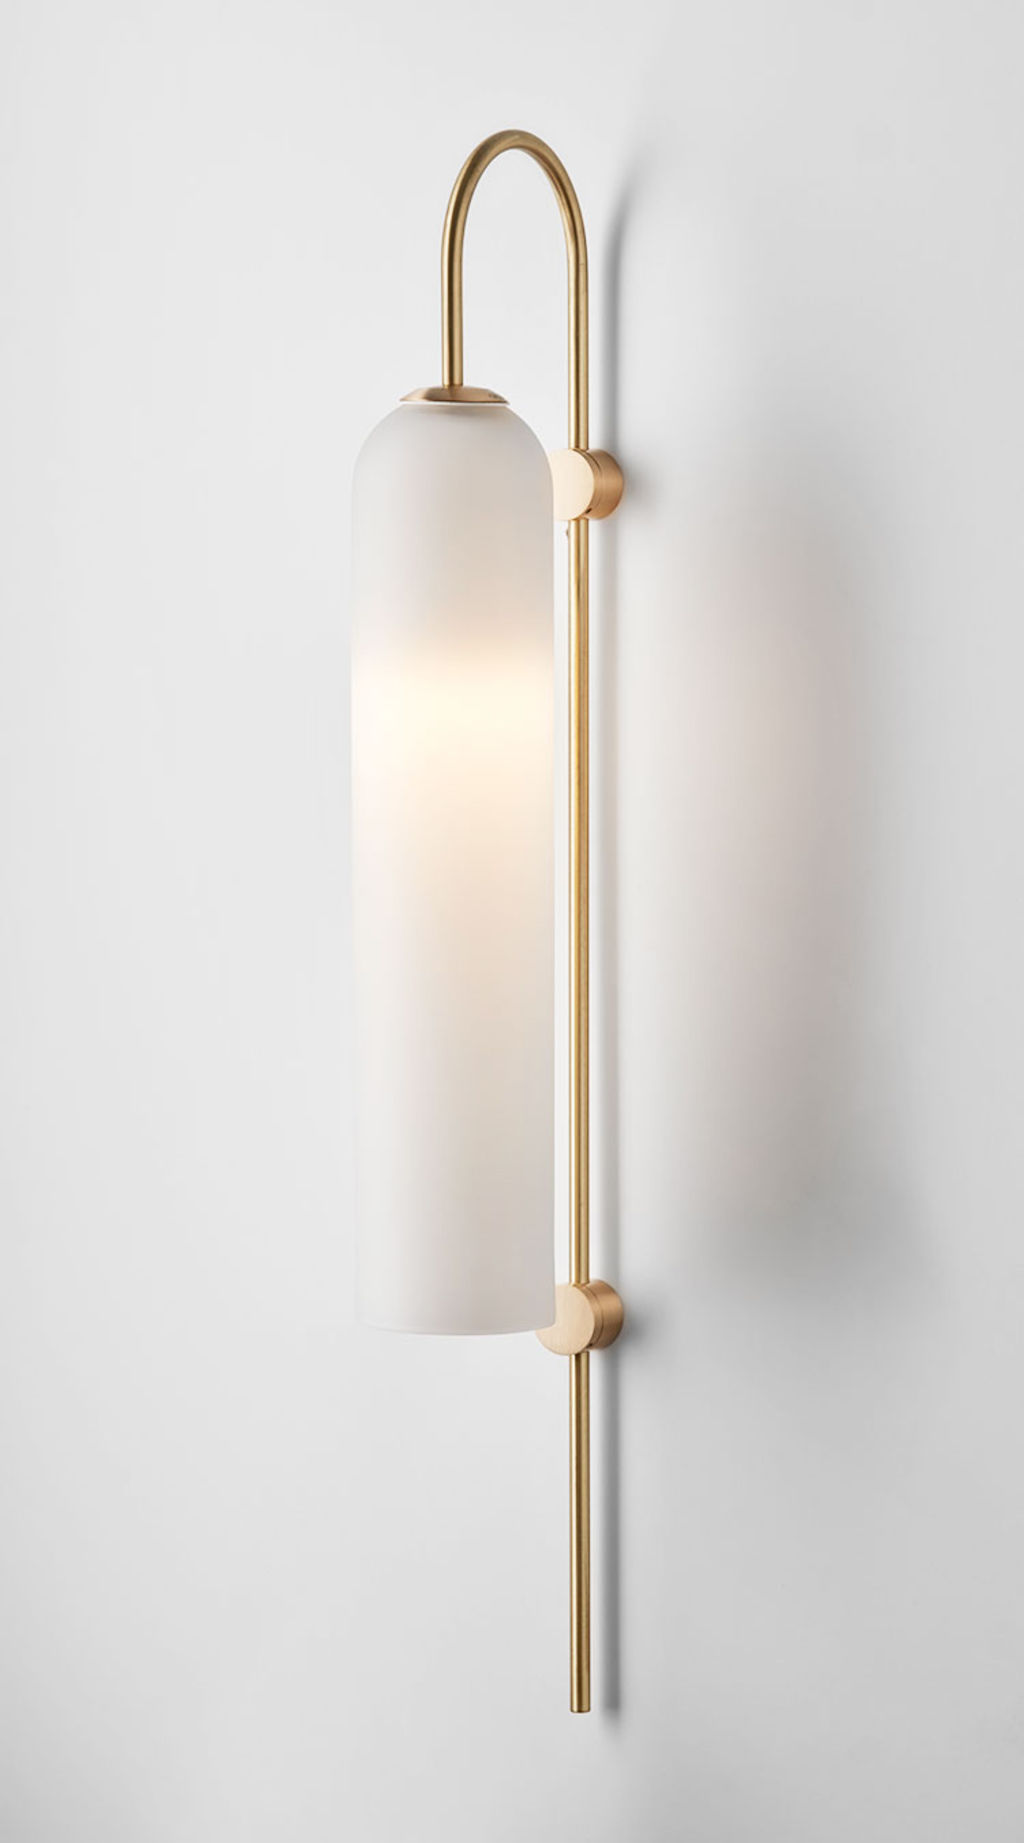 Vaucluse_Residence_Articolo_FloatWall_Sconce_apmv4b